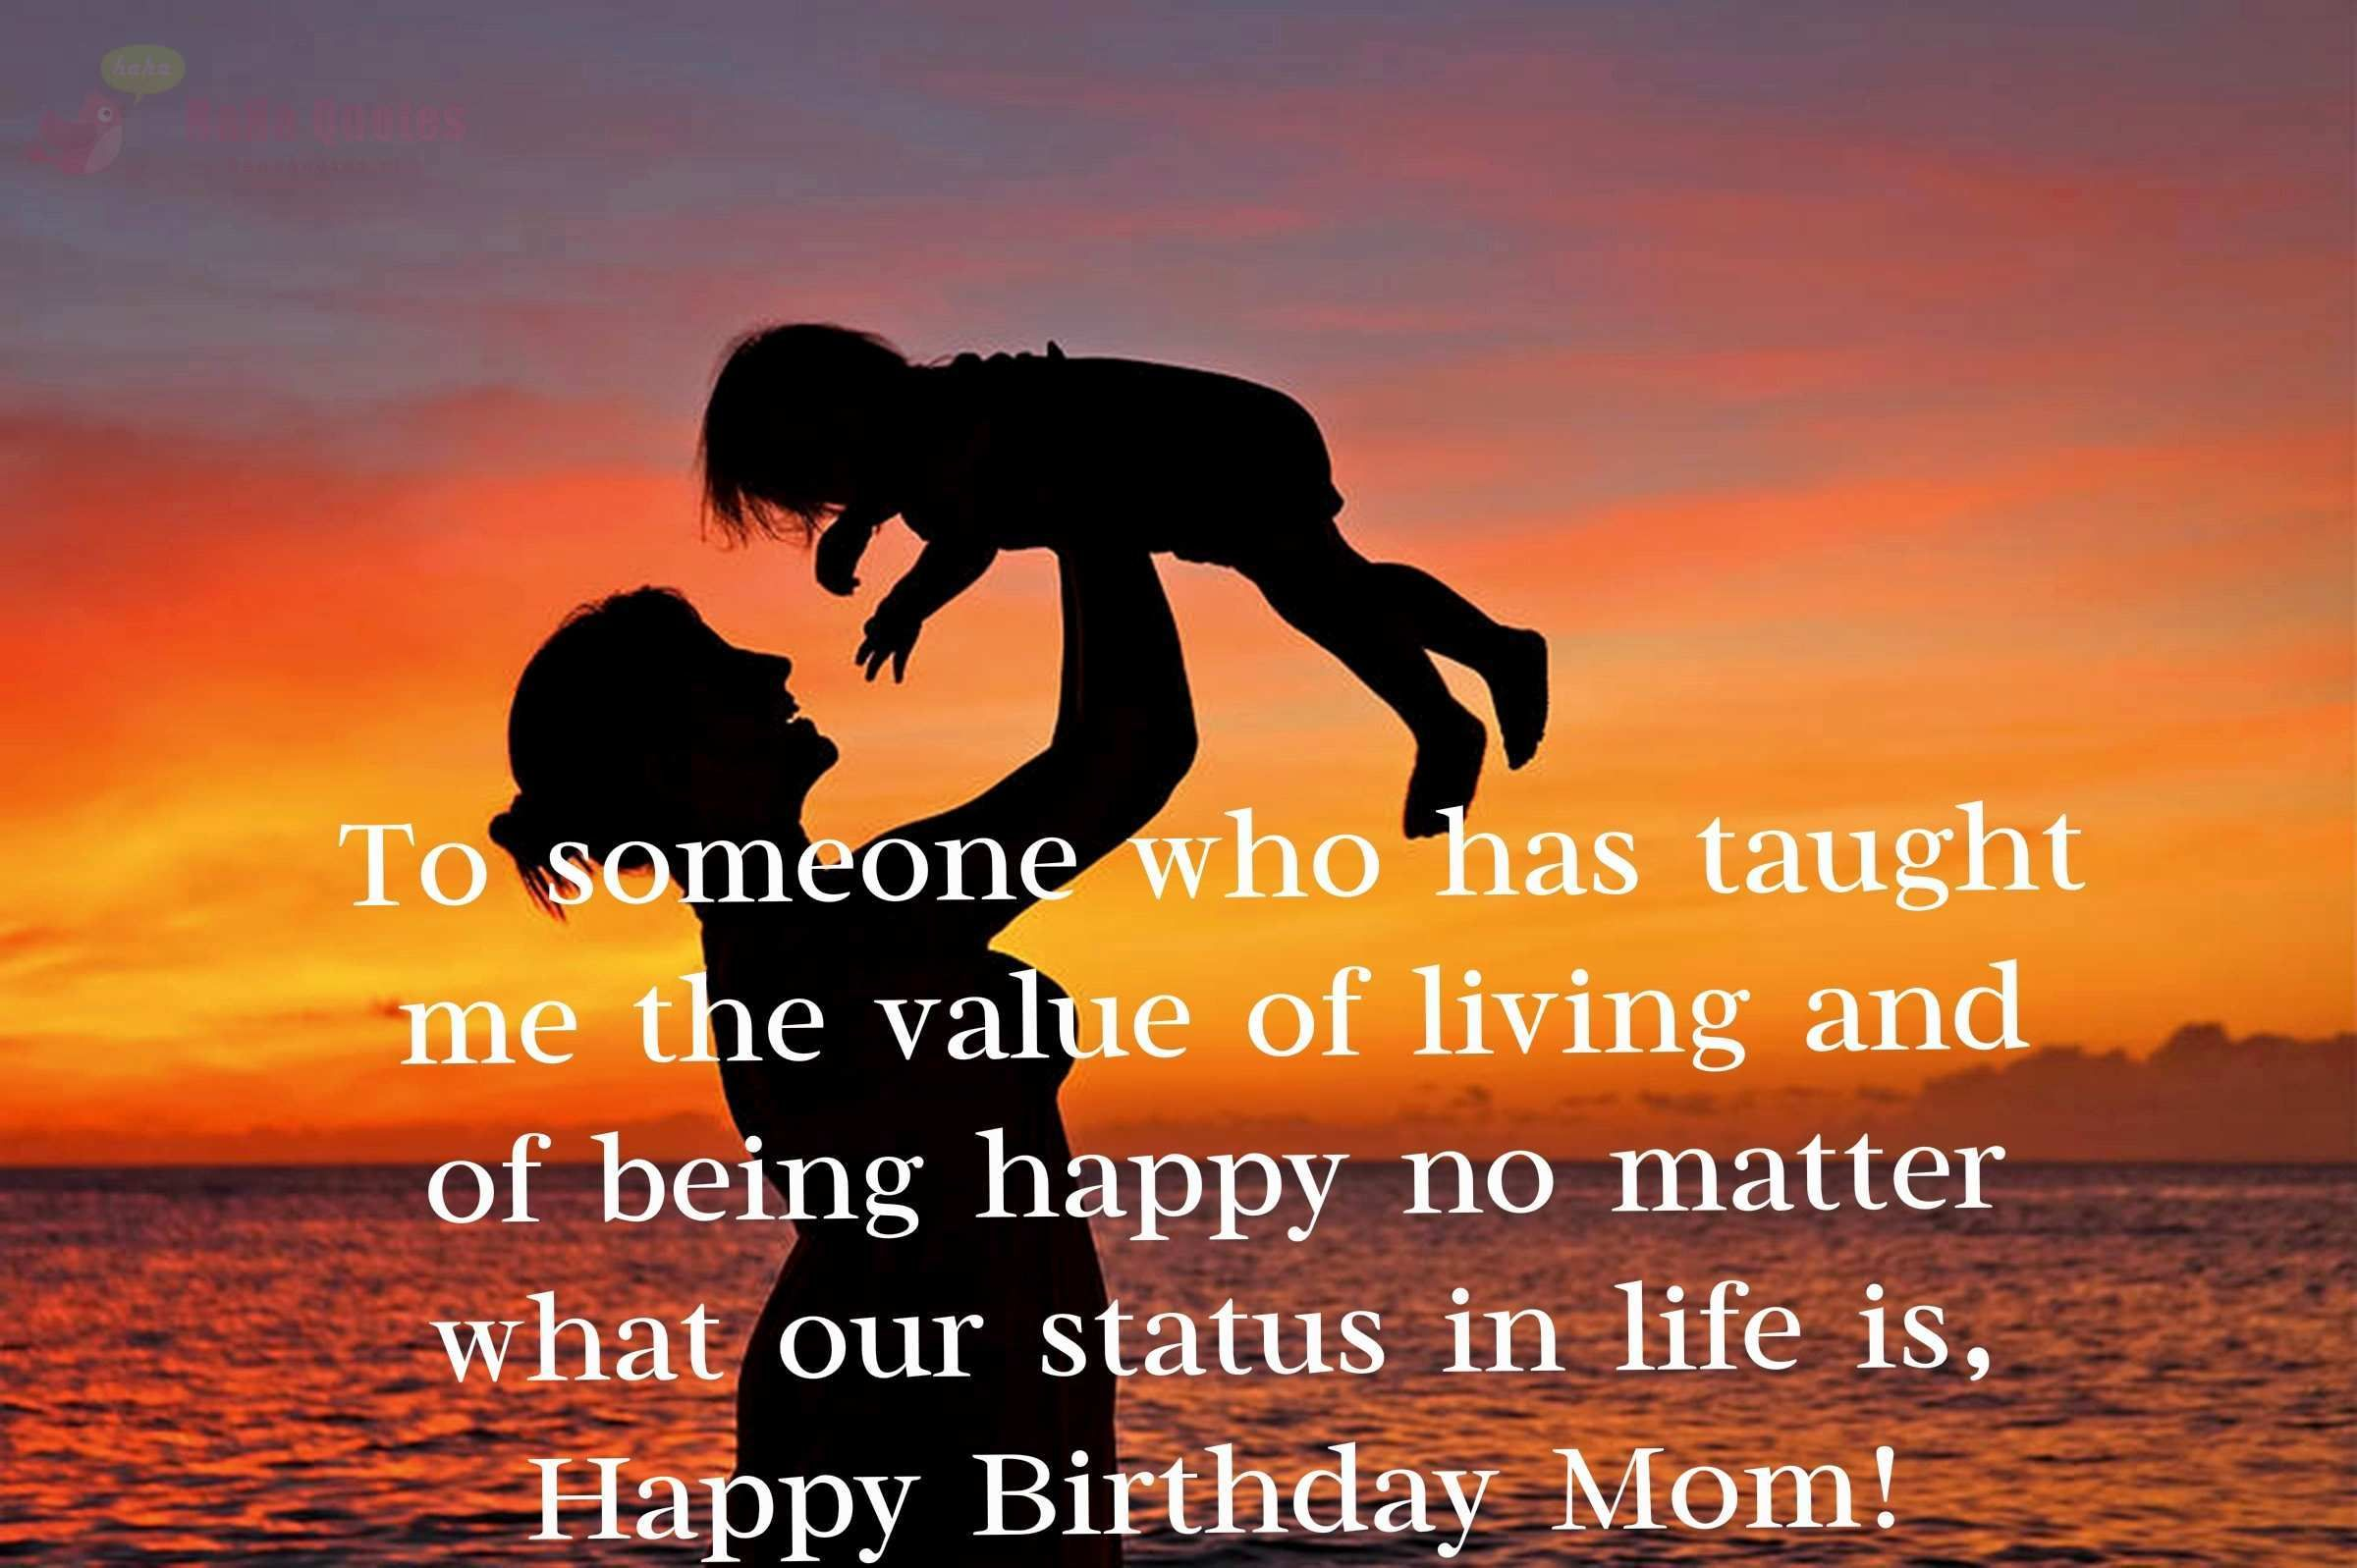 Birthday Wishes To Mom From Daughter Elegant Happy Birthday Quotes Mom Awesome Love Daugh Mom Birthday Quotes Birthday Wishes For Mom Happy Birthday Mom Quotes